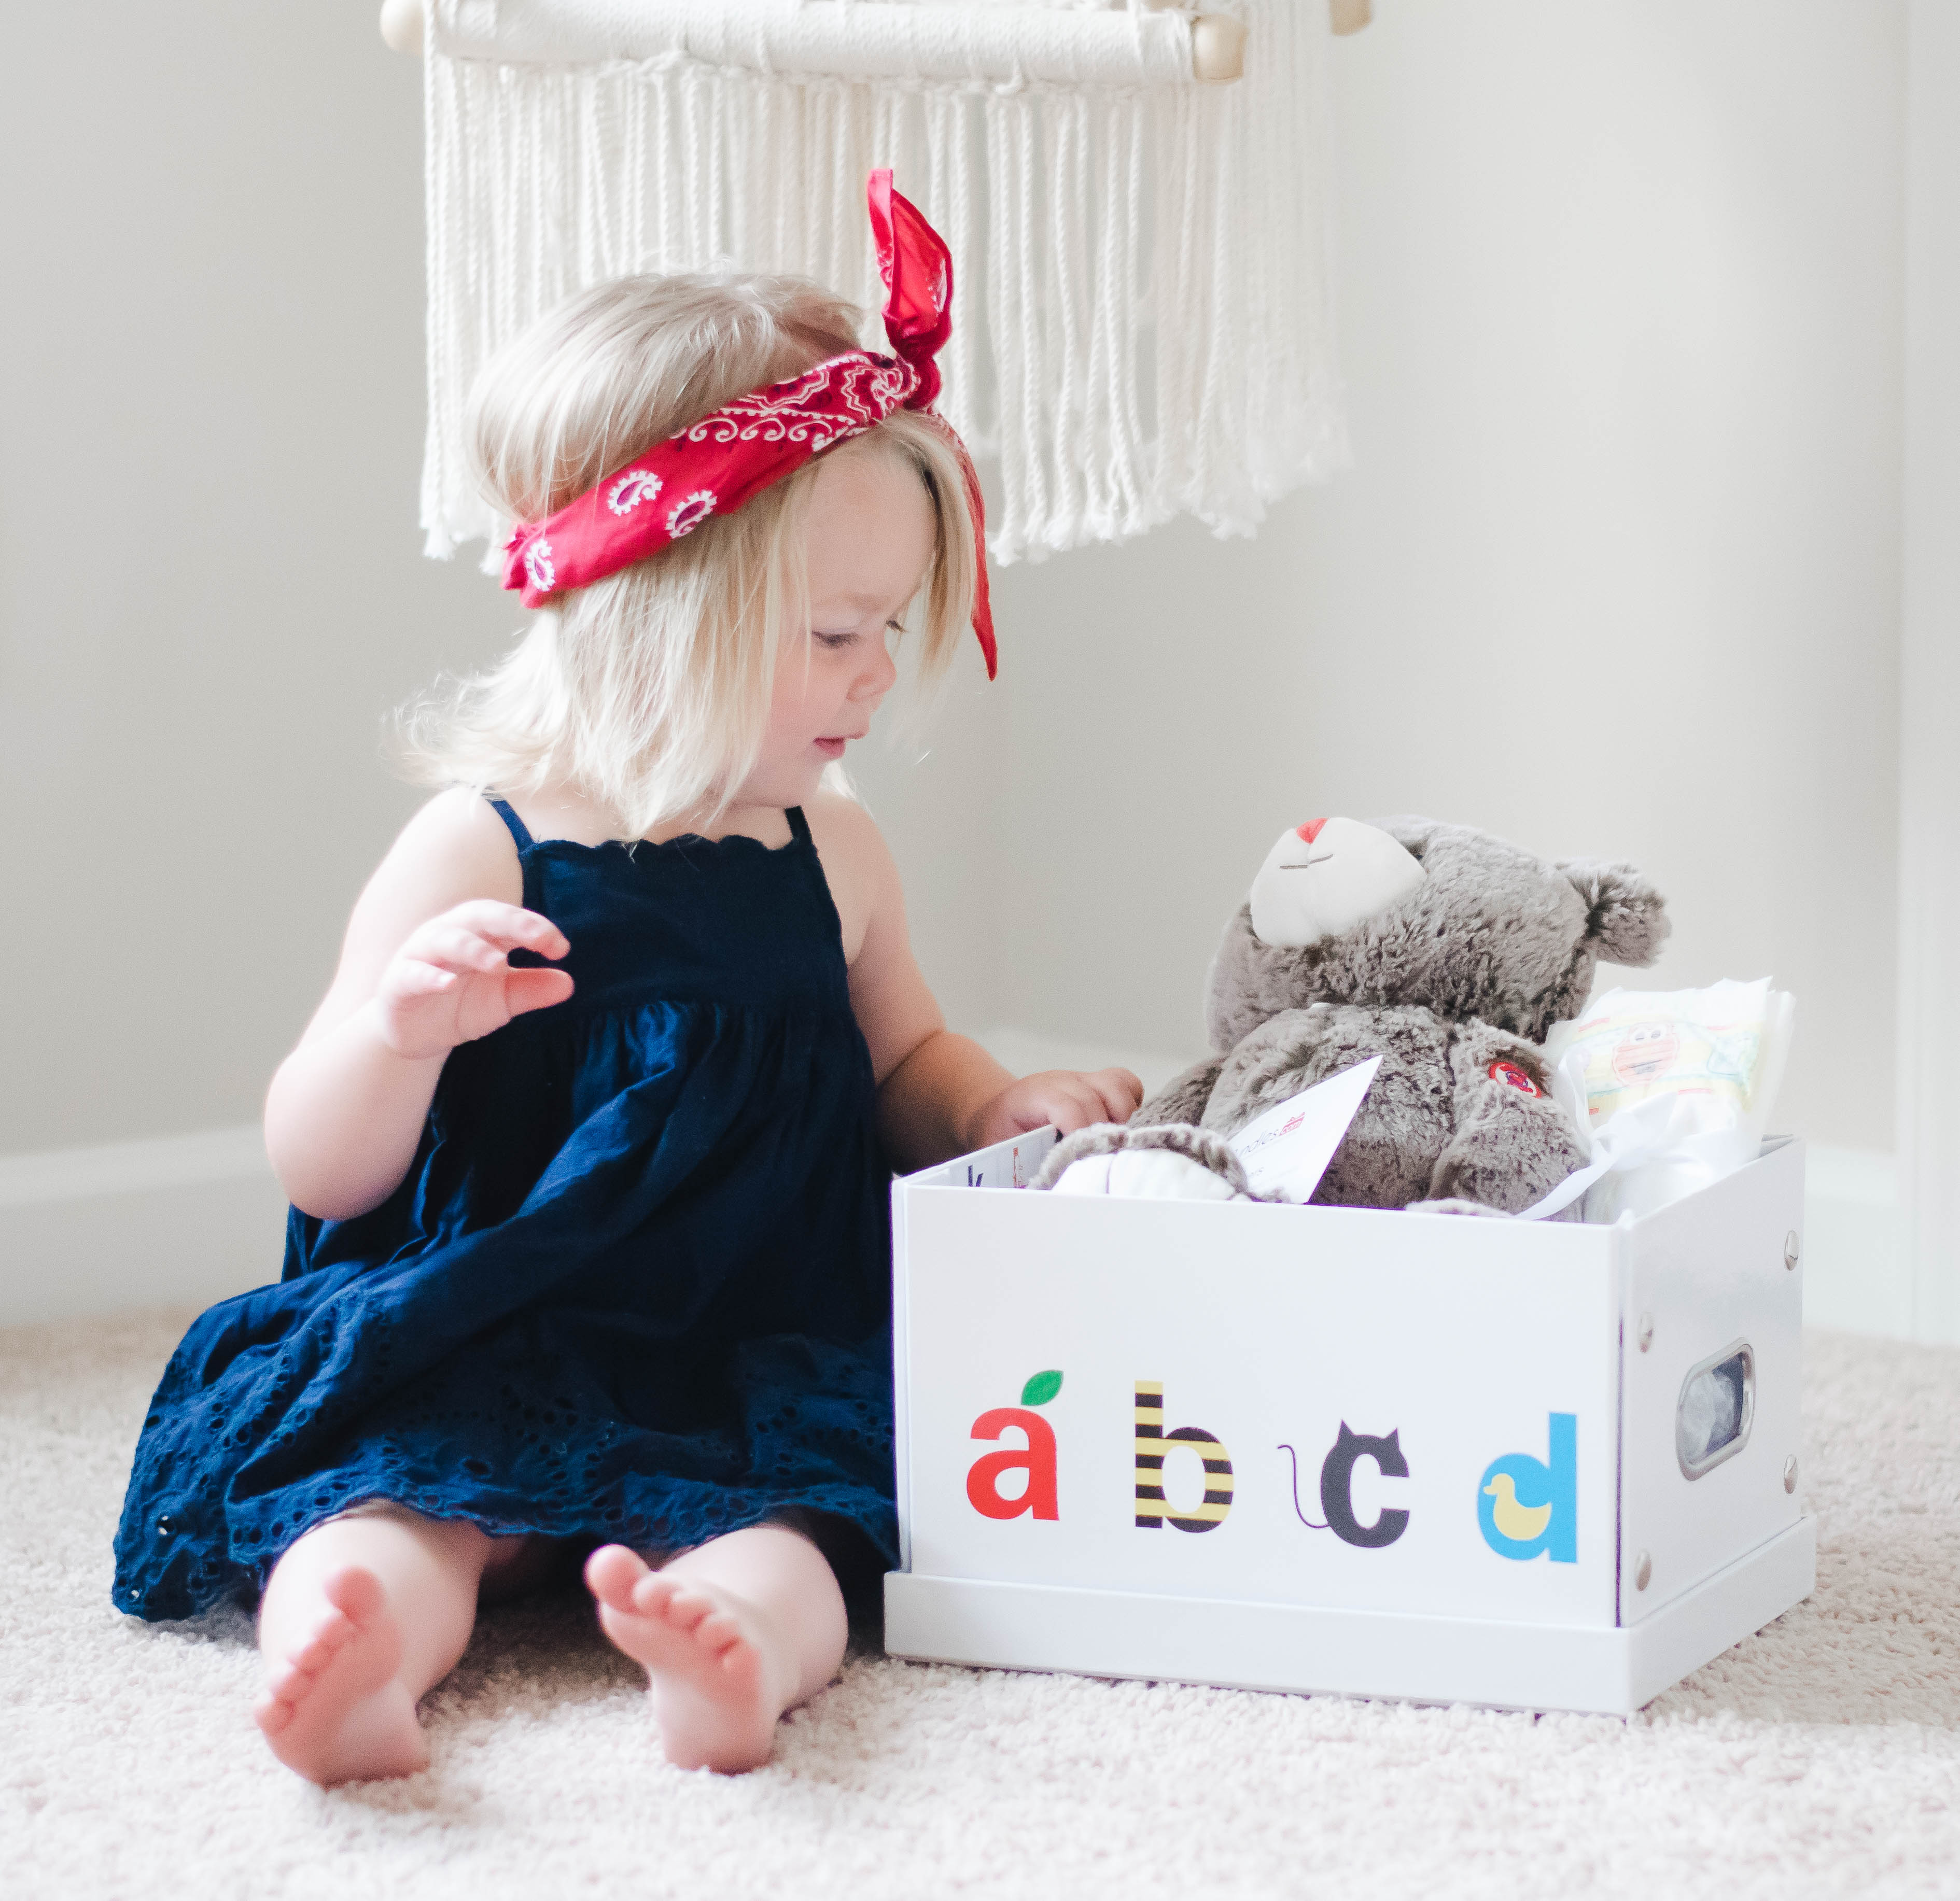 Looking For the perfect baby gift? Look no further! IncrediBundles has made giving the perfect baby gift easy and affordable for any budget! & The perfect baby gift with IncrediBundles! - foxy twine